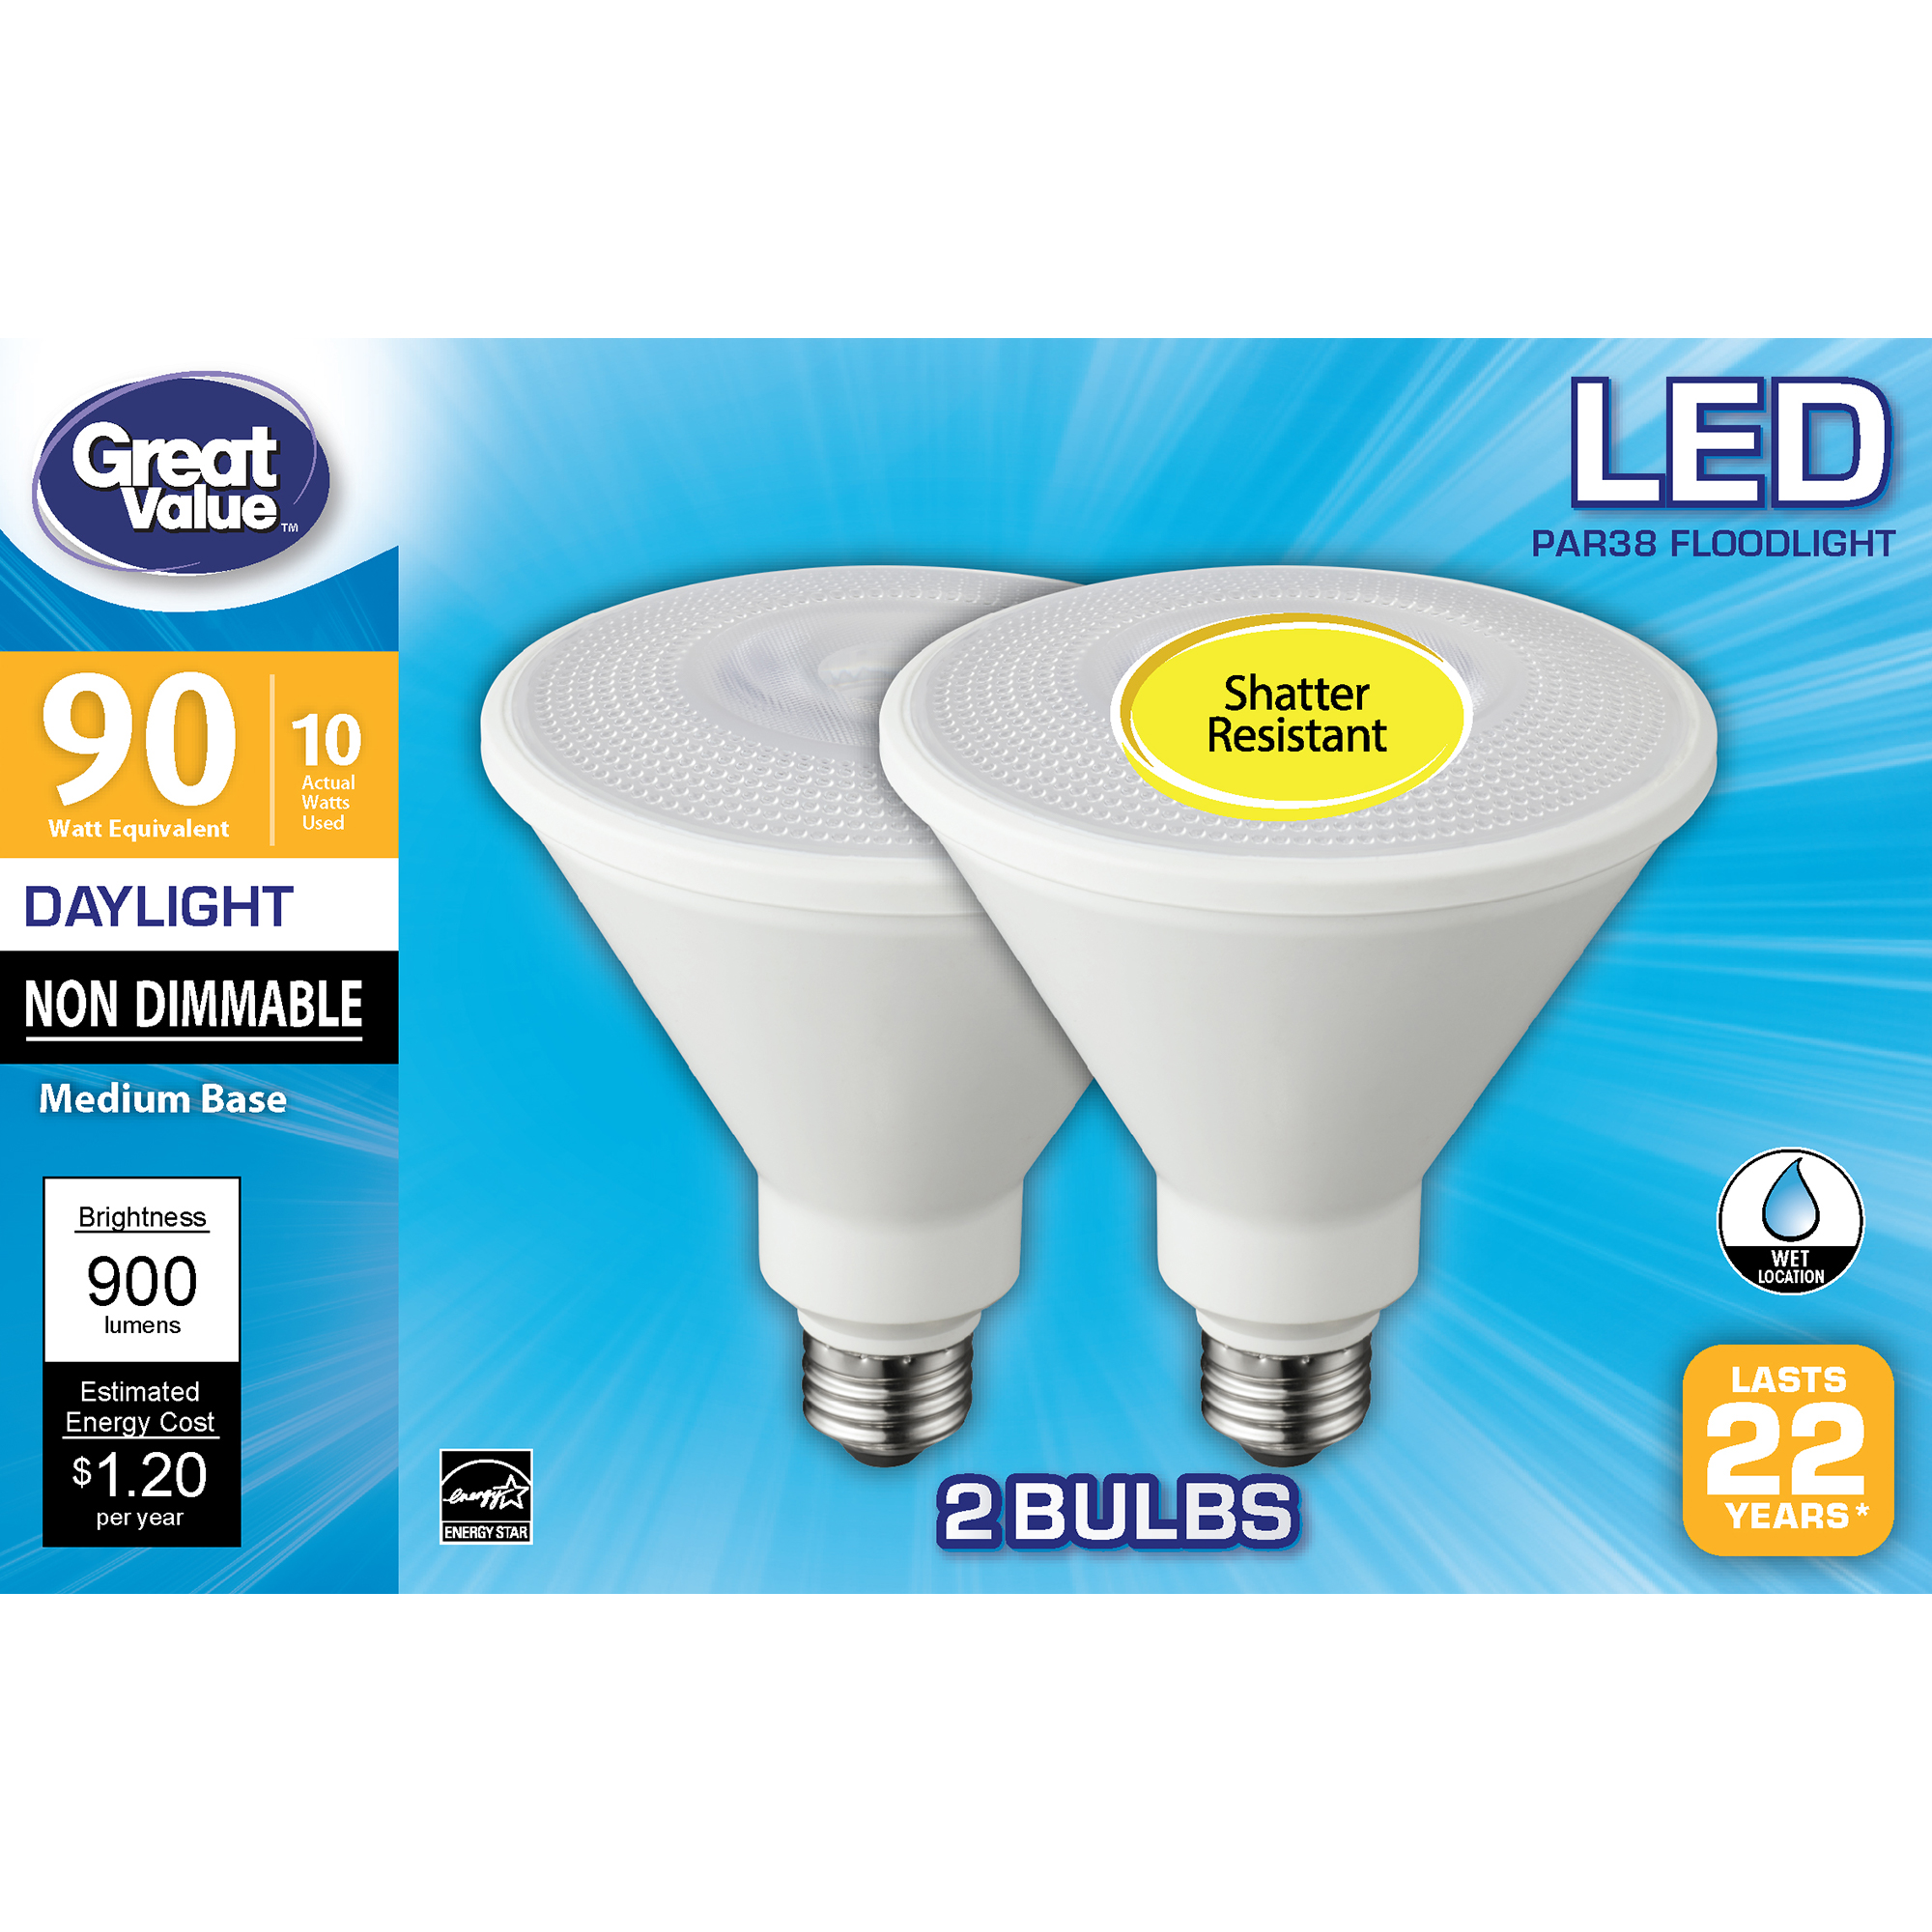 Great Value Led Light Bulb 10 Watts 90w Equivalent Par38 Floodlight Lamp E26 Medium Base Non Dimmable Daylight 2 Pack Walmart Com Walmart Com